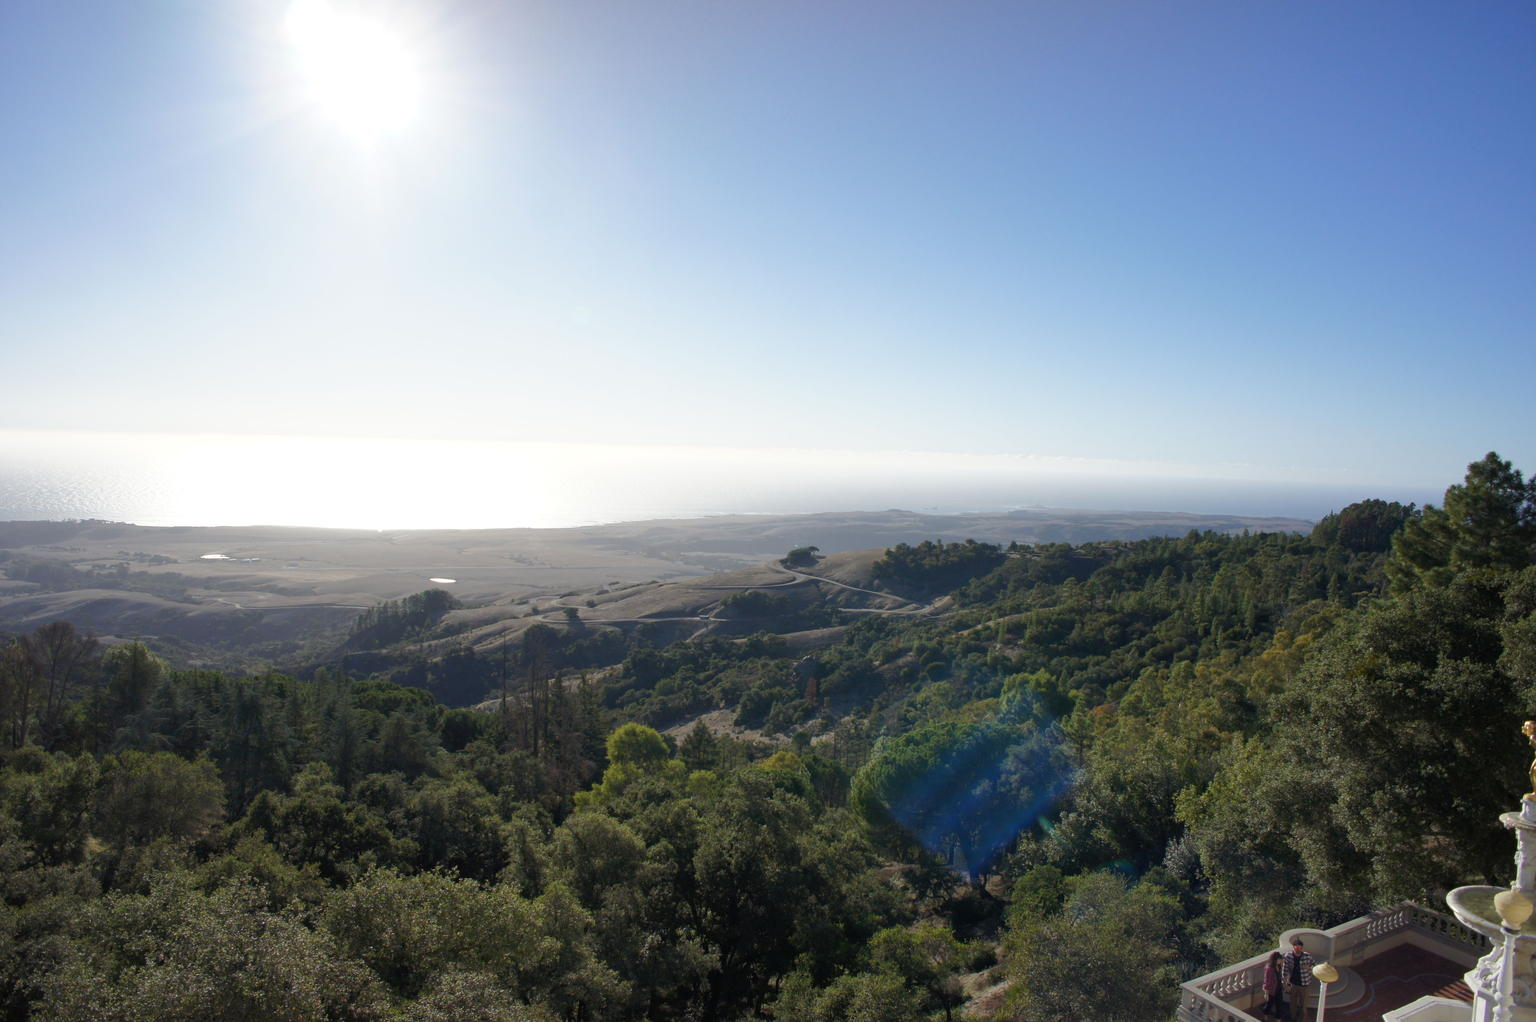 Santa Barbara, Solvang and Hearst Castle Day Trip from Los Angeles